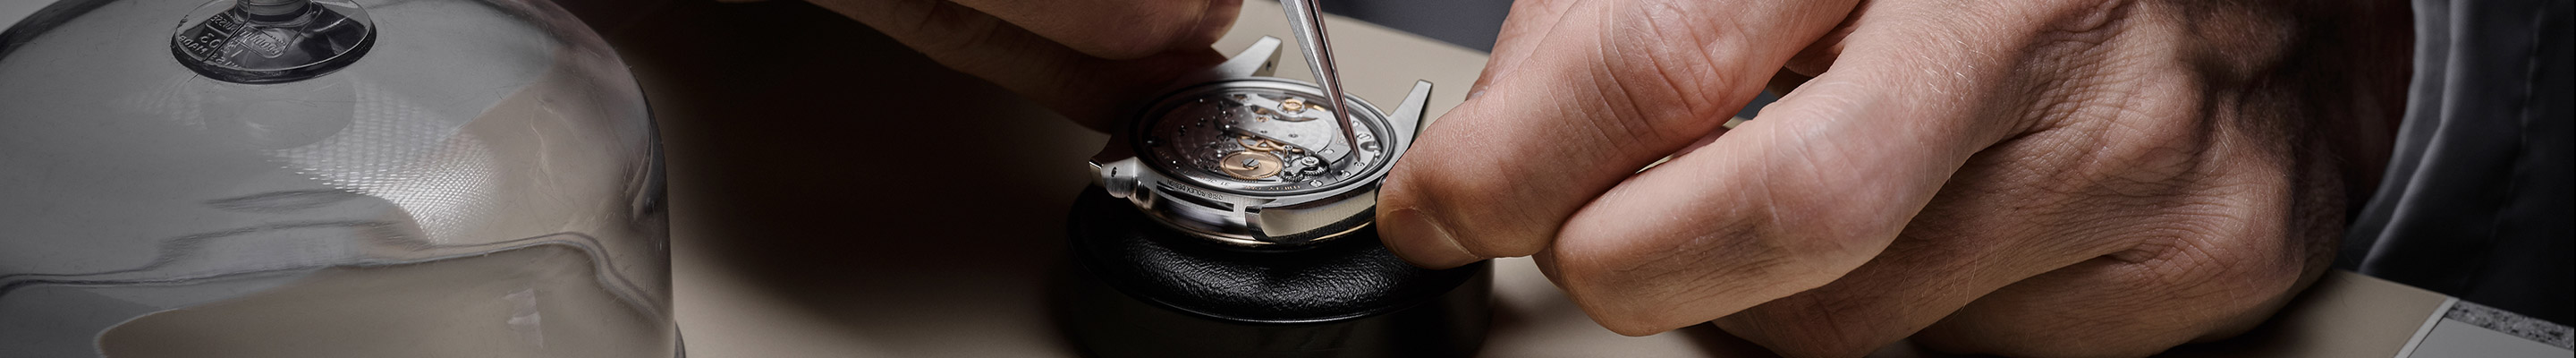 servicing your rolex image banner 01